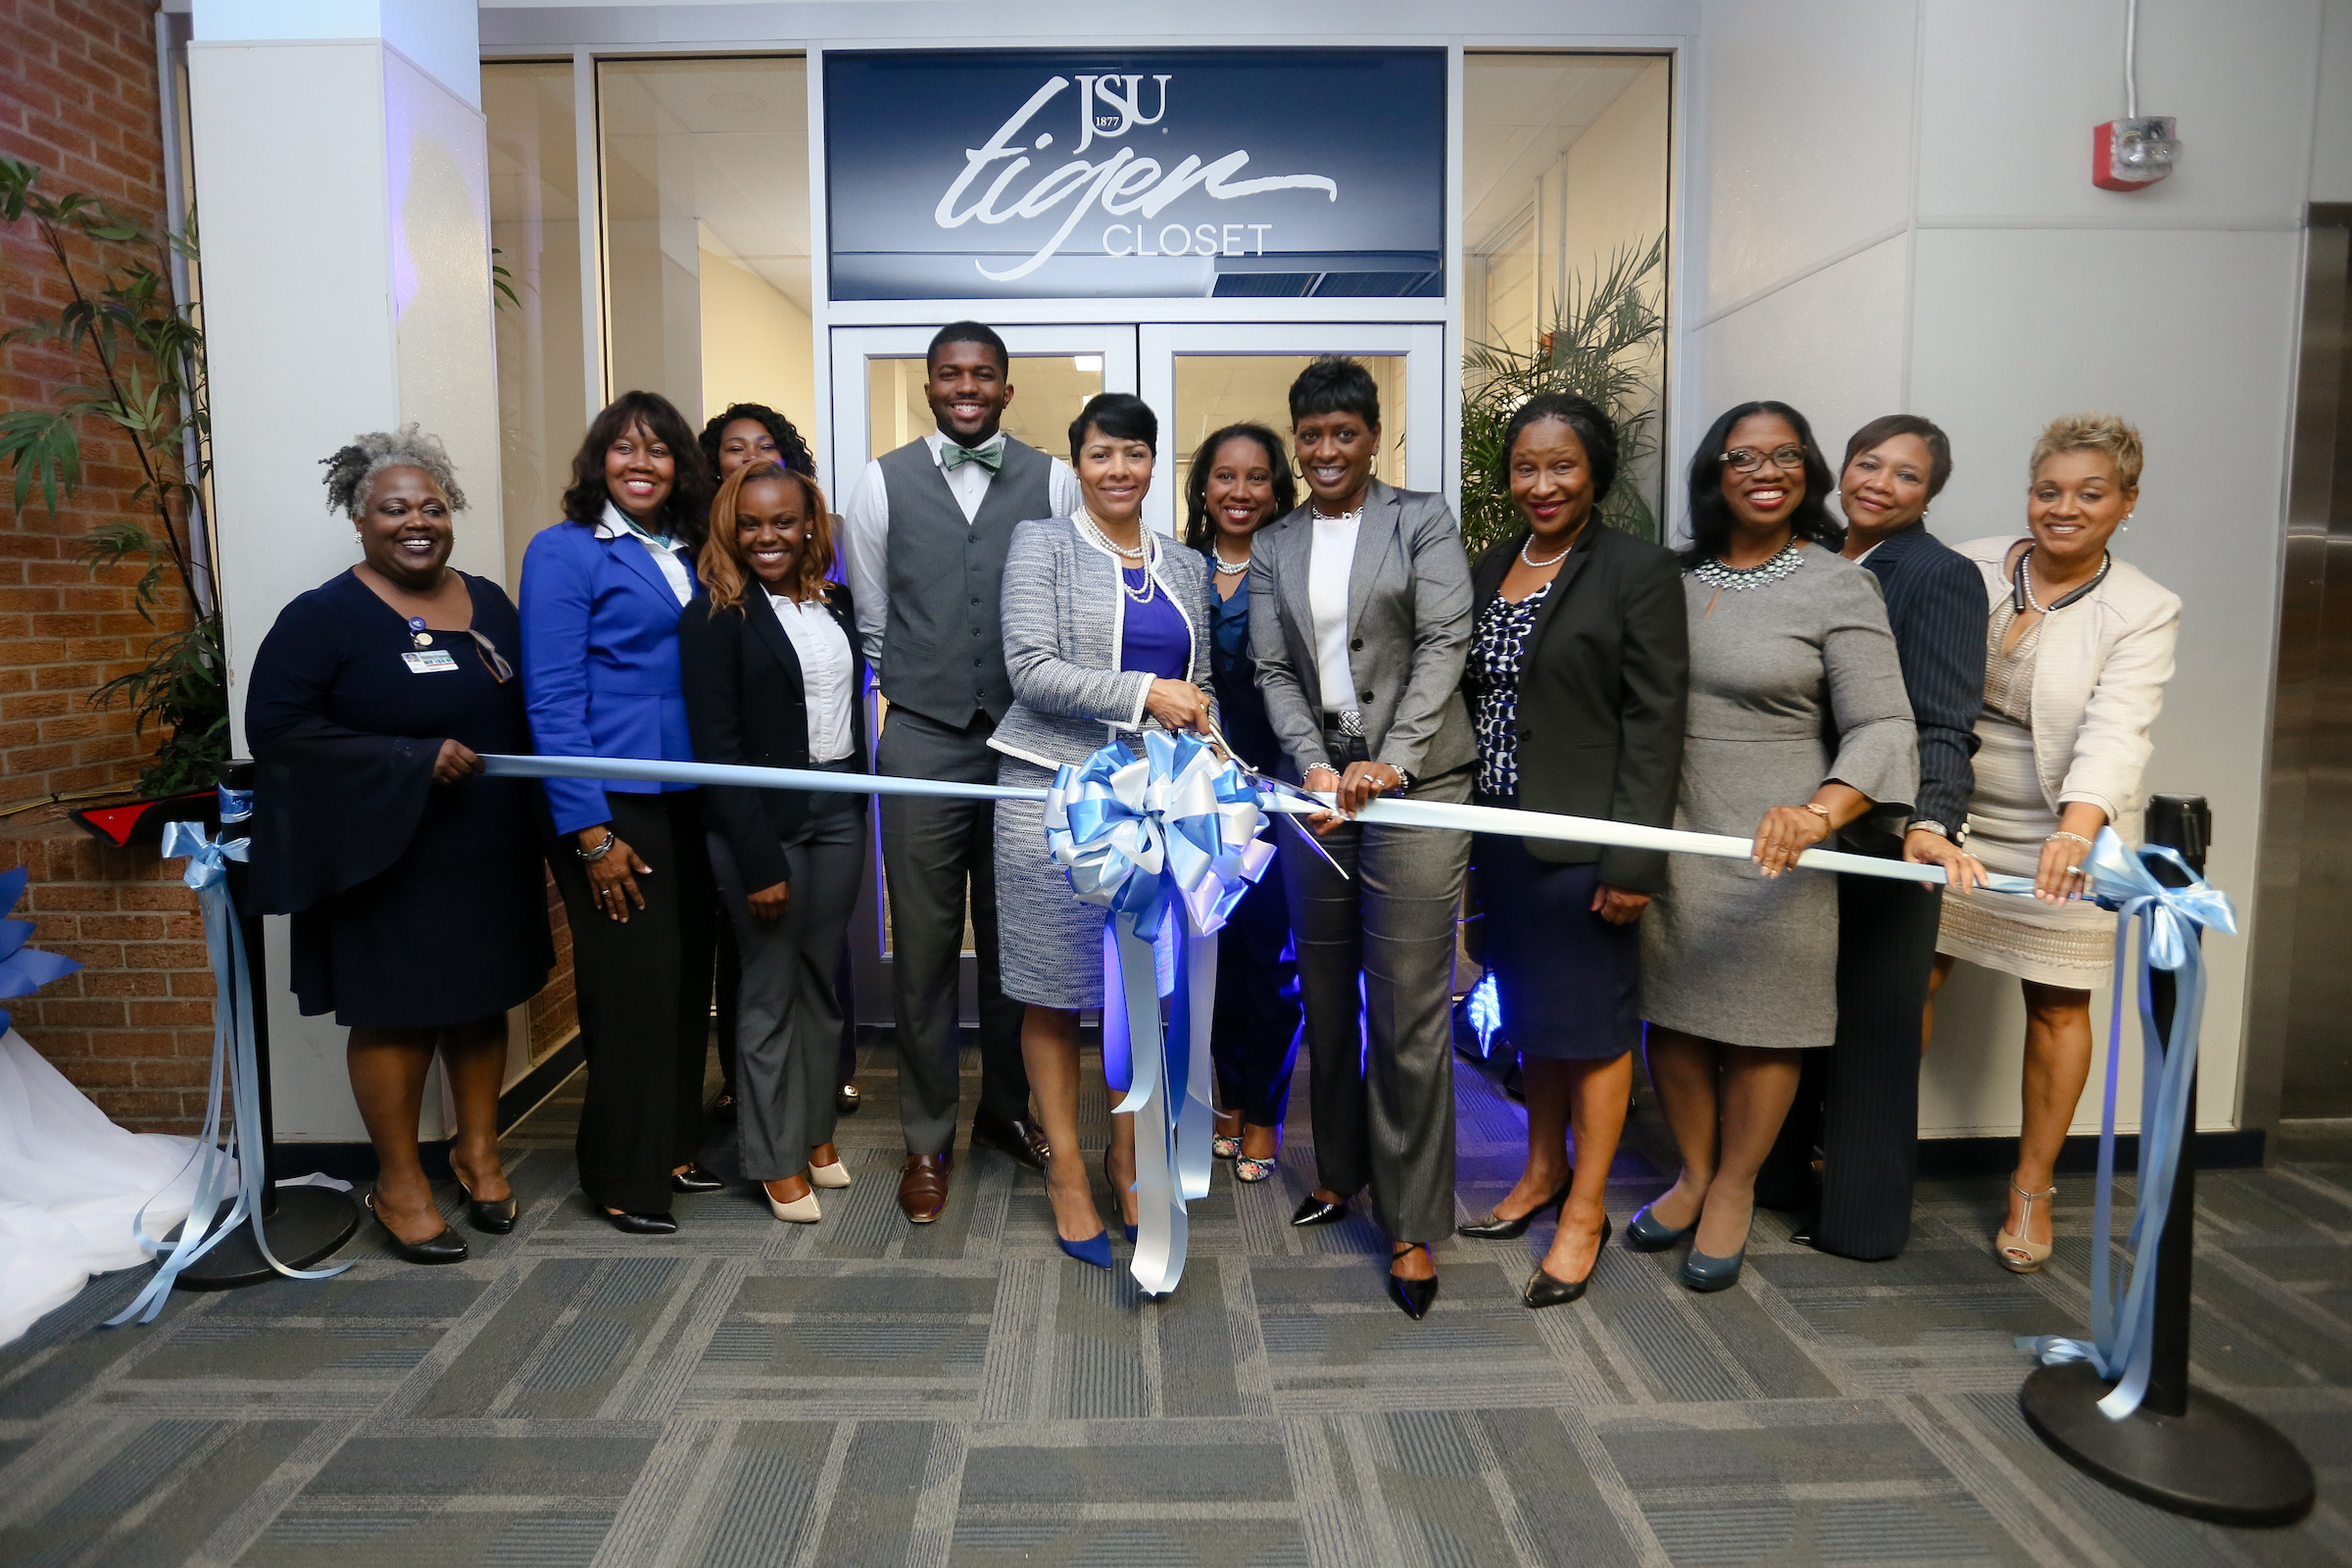 First lady Deborah Elaine Bynum prepares to cut the ribbon signaling the grand opening of the JSU Tiger Career Closet as she is flanked by those who helped bring her University initiative to fruition. (Photo by Anissa Hidouk/JSU)